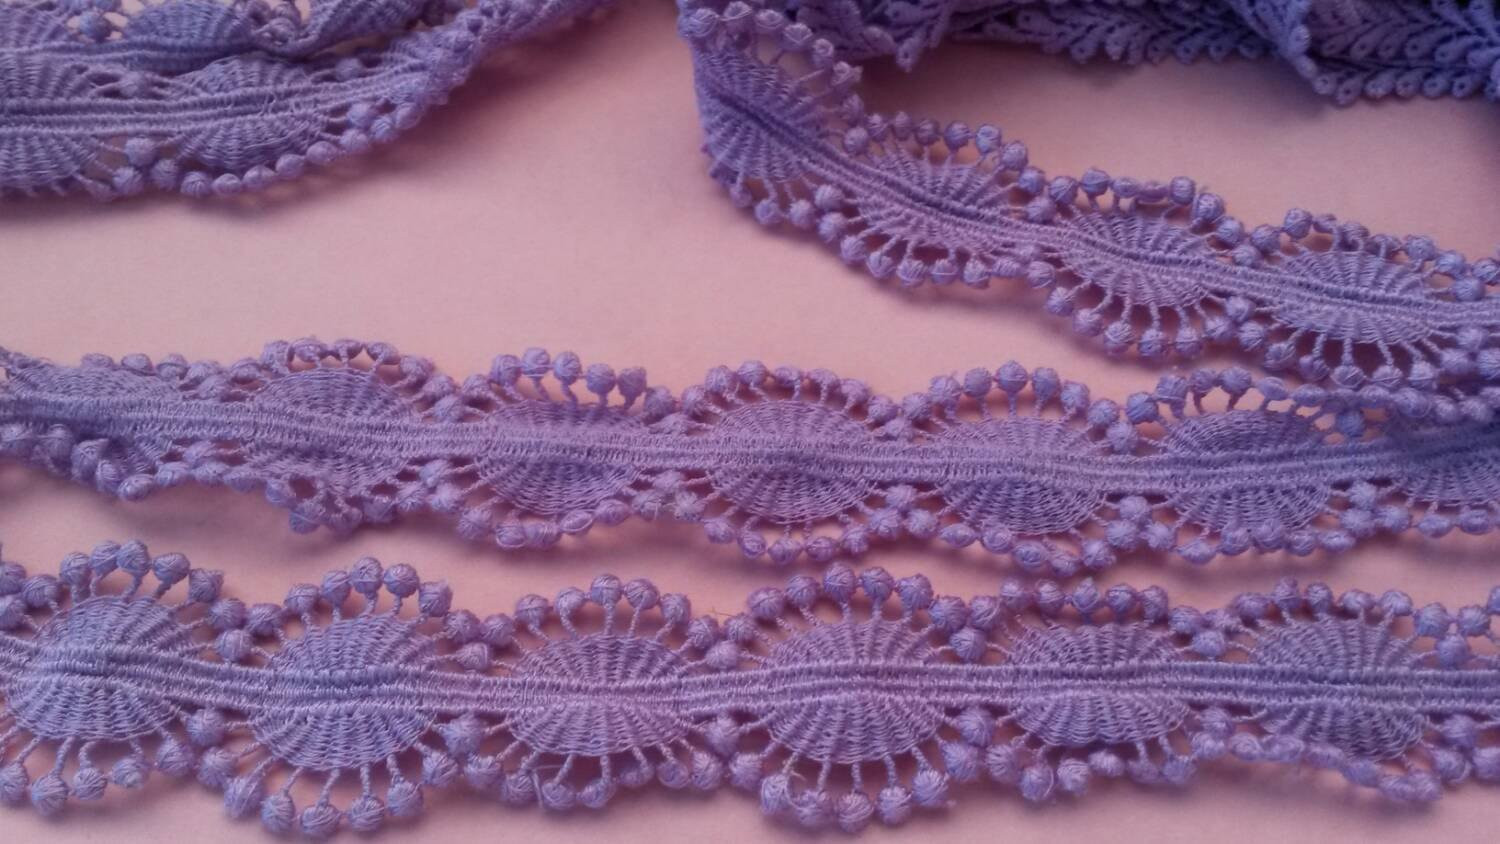 Crochet Lace Trimming Best Of 2 Yards Purple Lace Trim 1 Inch Wide Embroidery Crochet Of Superb 50 Pics Crochet Lace Trimming